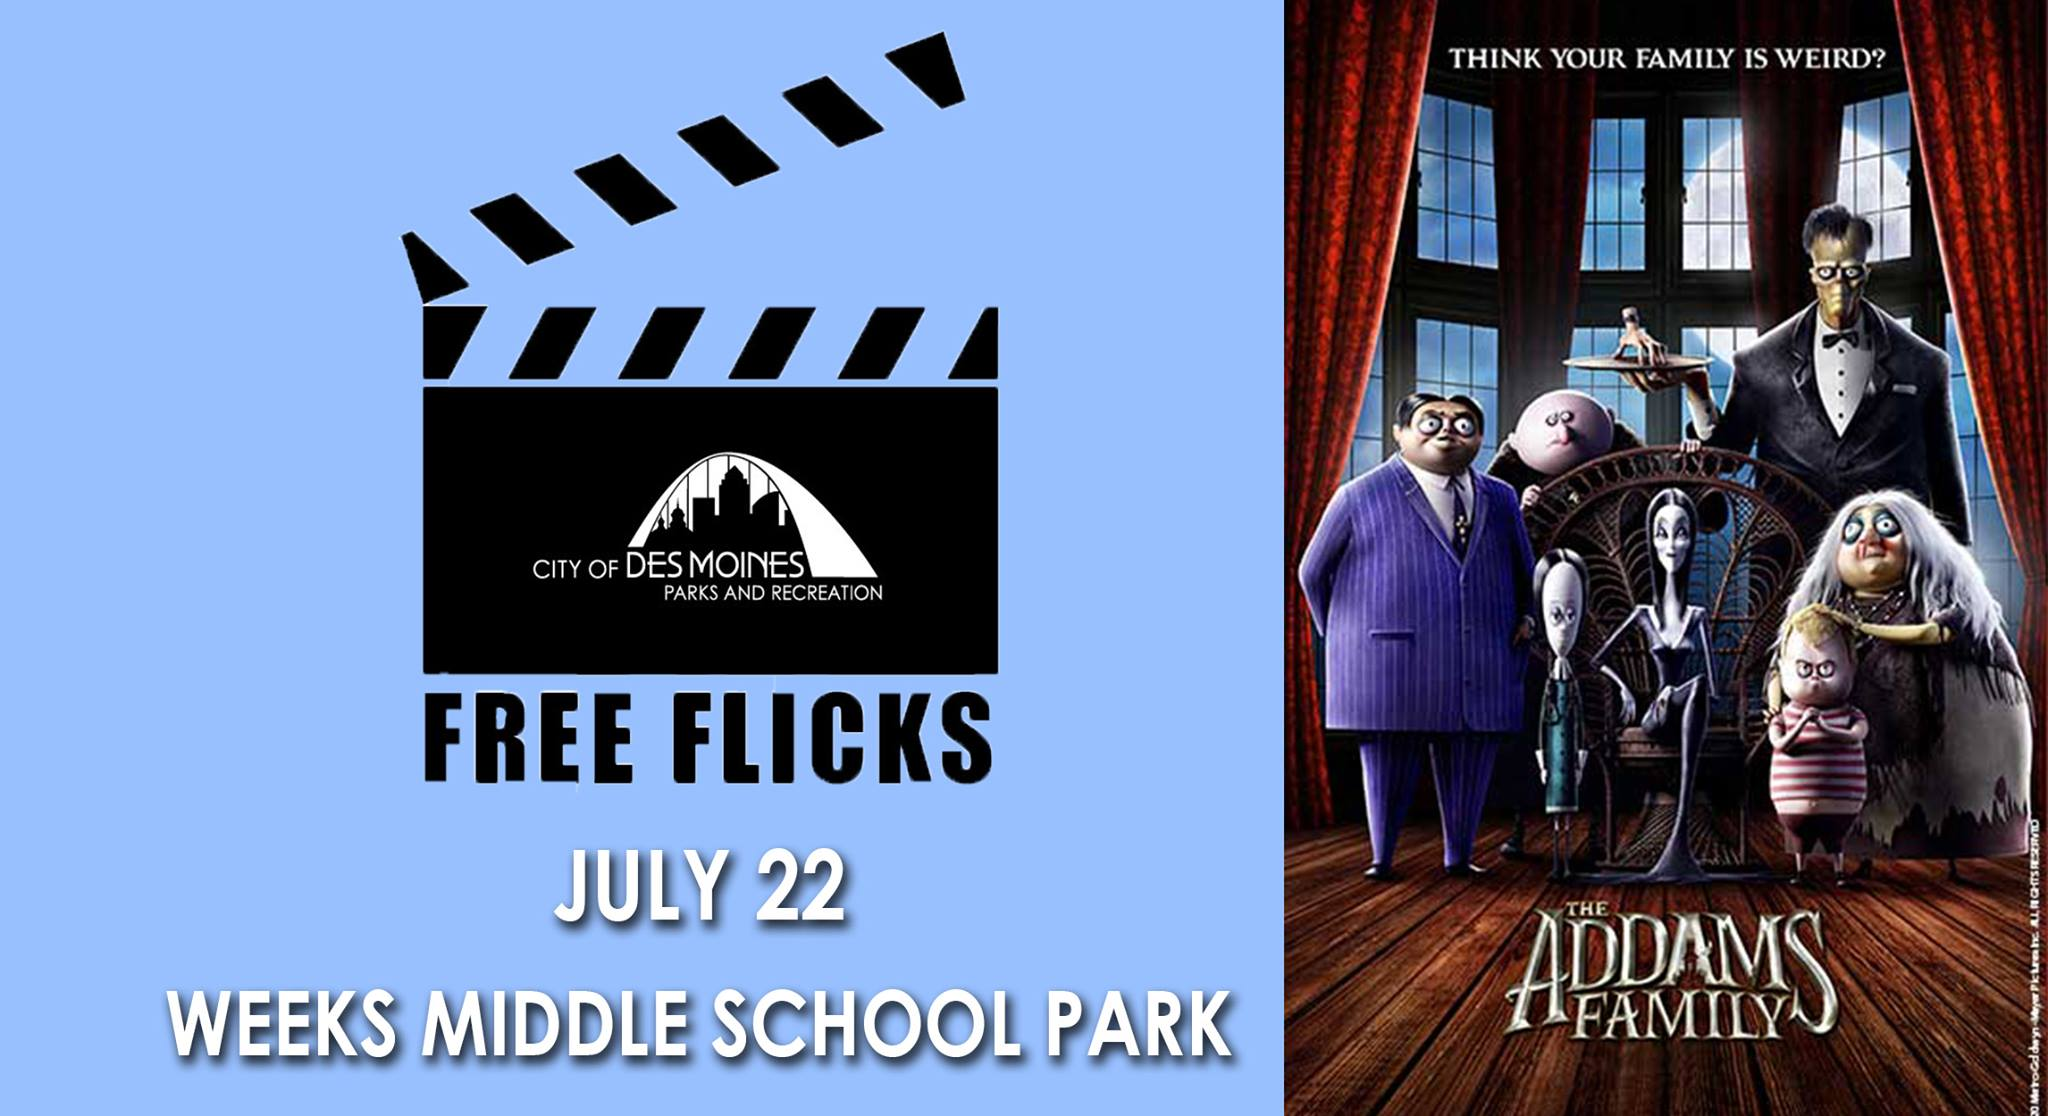 July 22 - The Addams Family